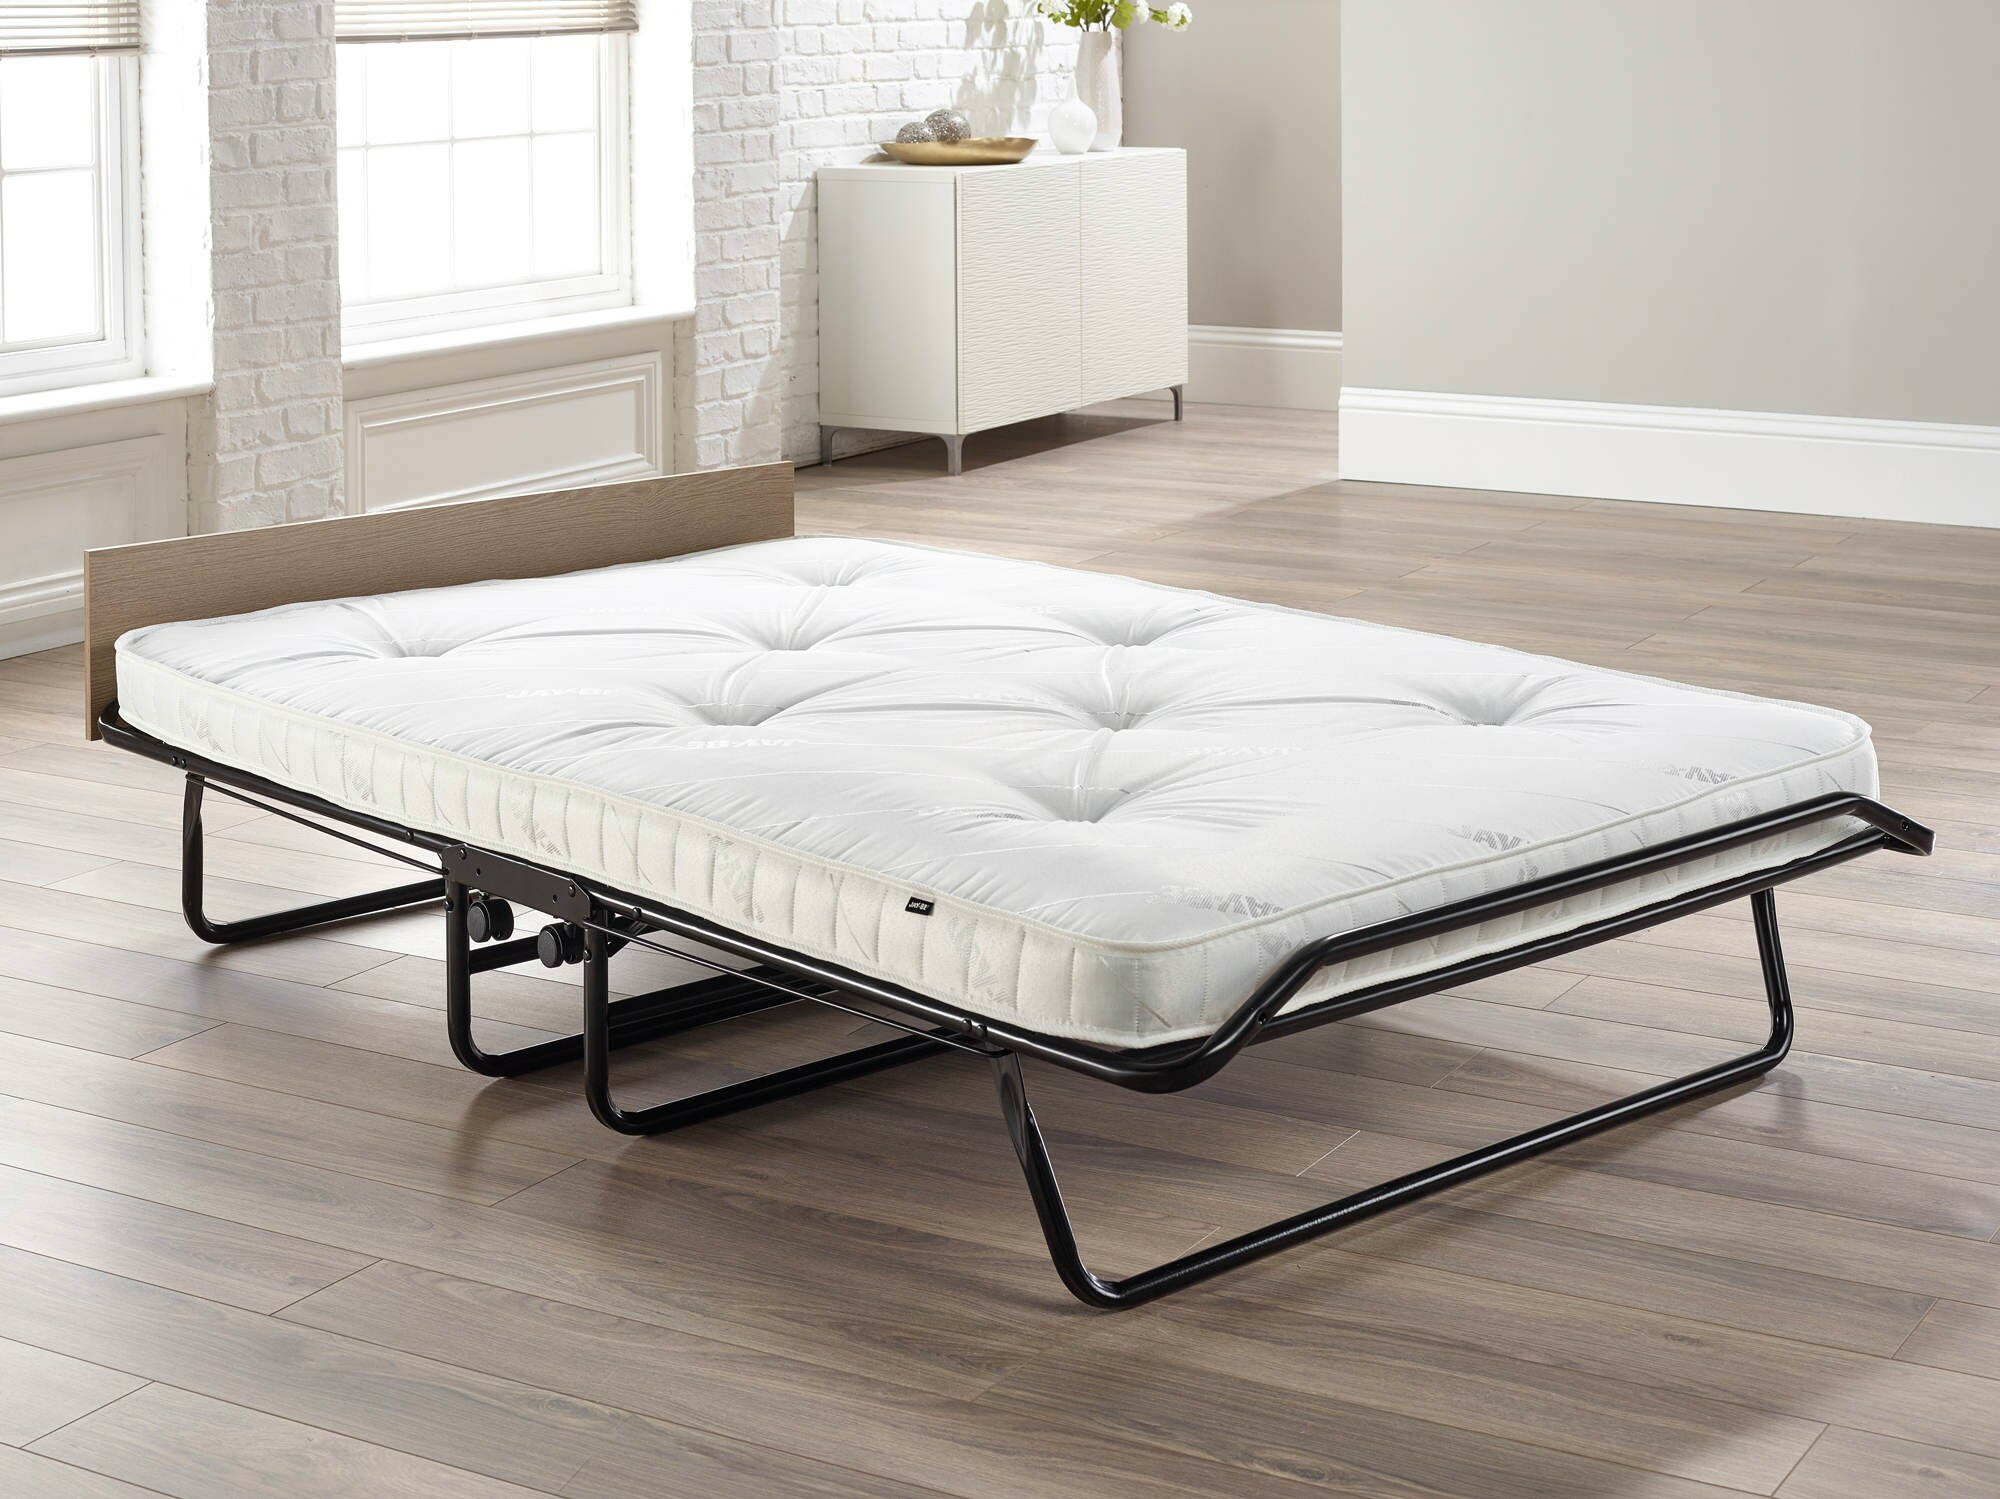 - Beds, Frames & Bases Bed & Mattress Sets Double Steel Black JAY-BE